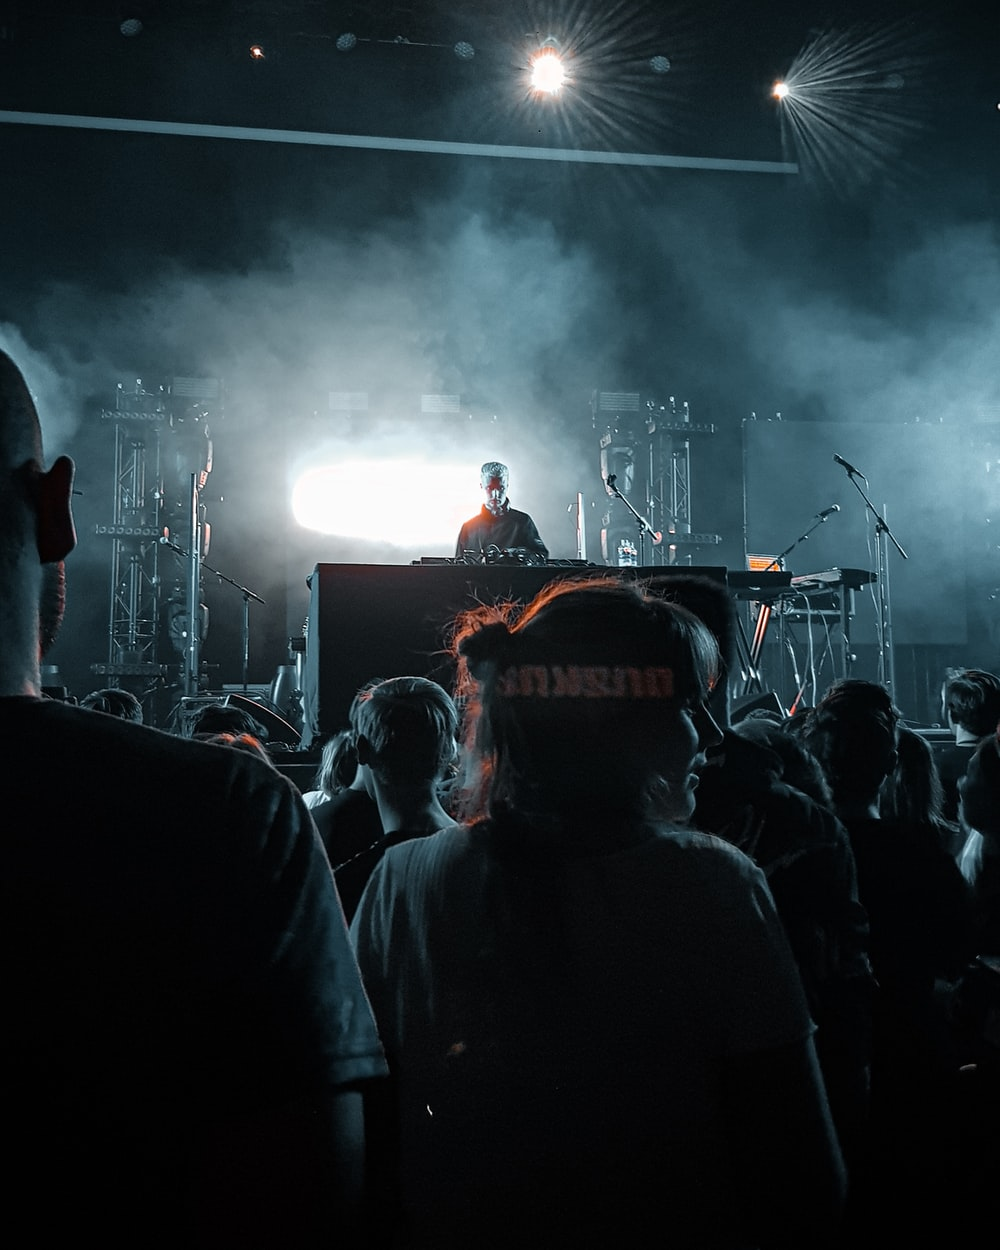 DJ performing on stage in front of people